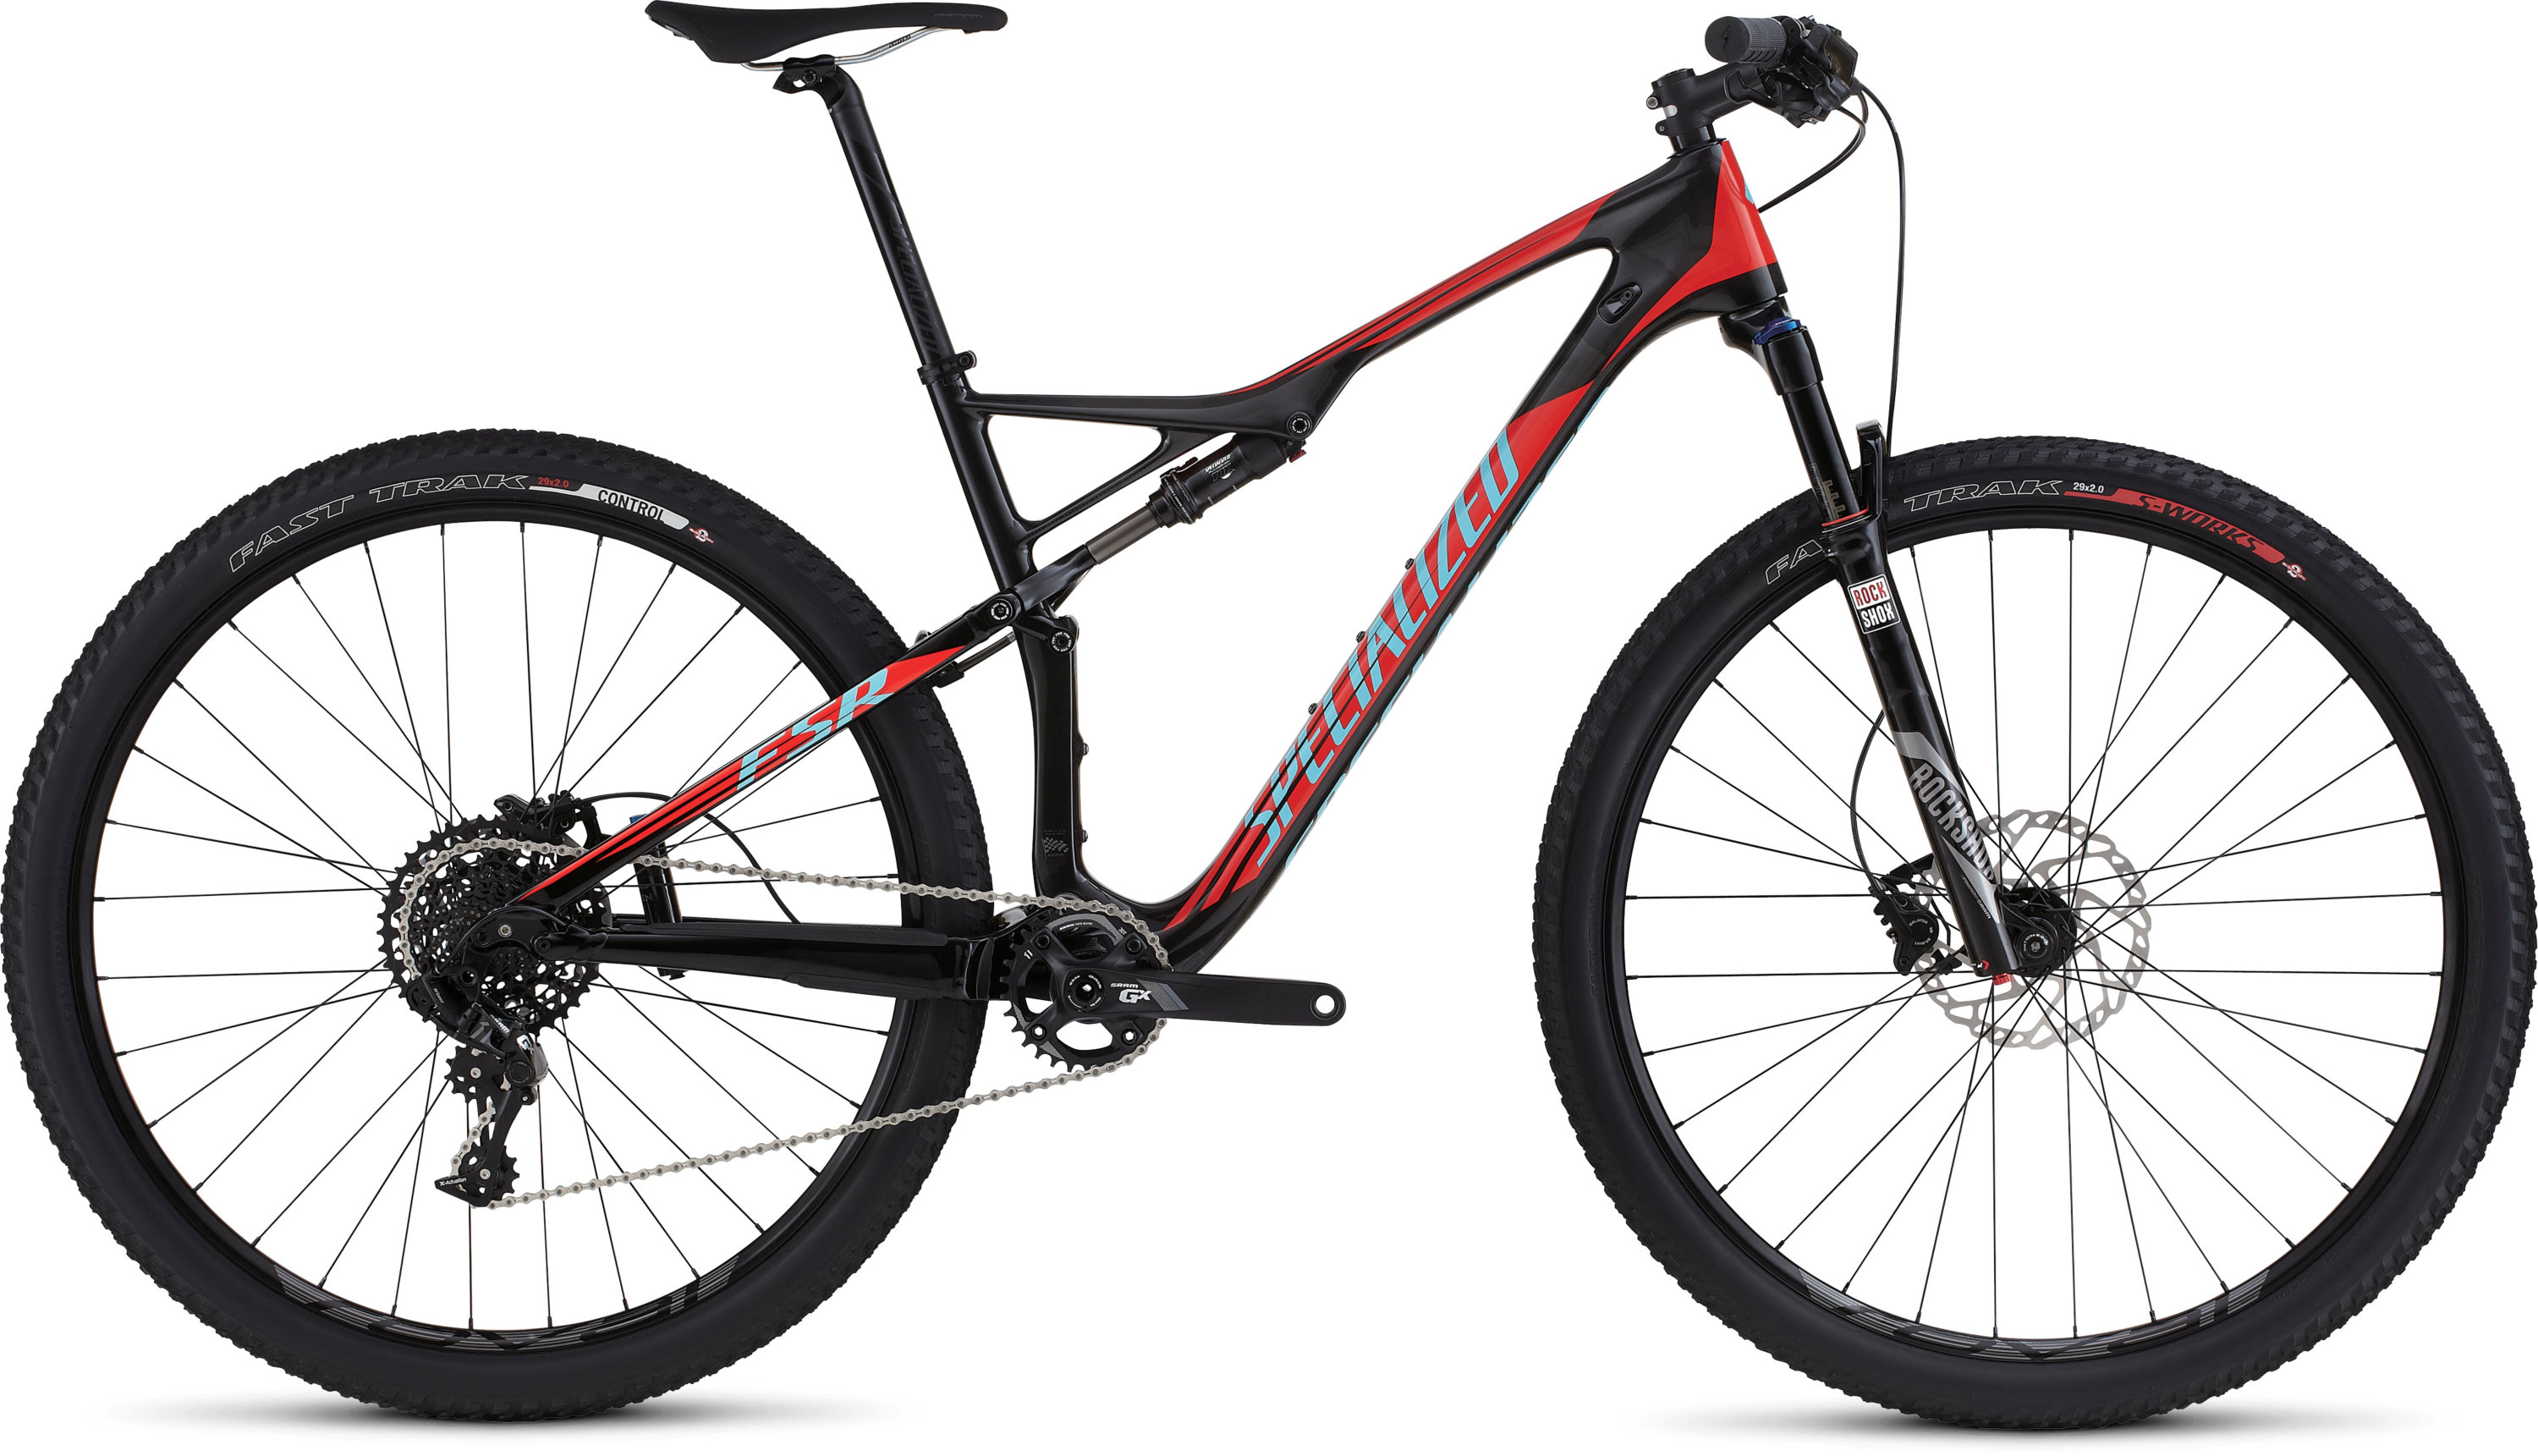 SPECIALIZED EPIC FSR COMP CARBON WC 29 CARB/RKTRED/LTBLU S - schneider-sports